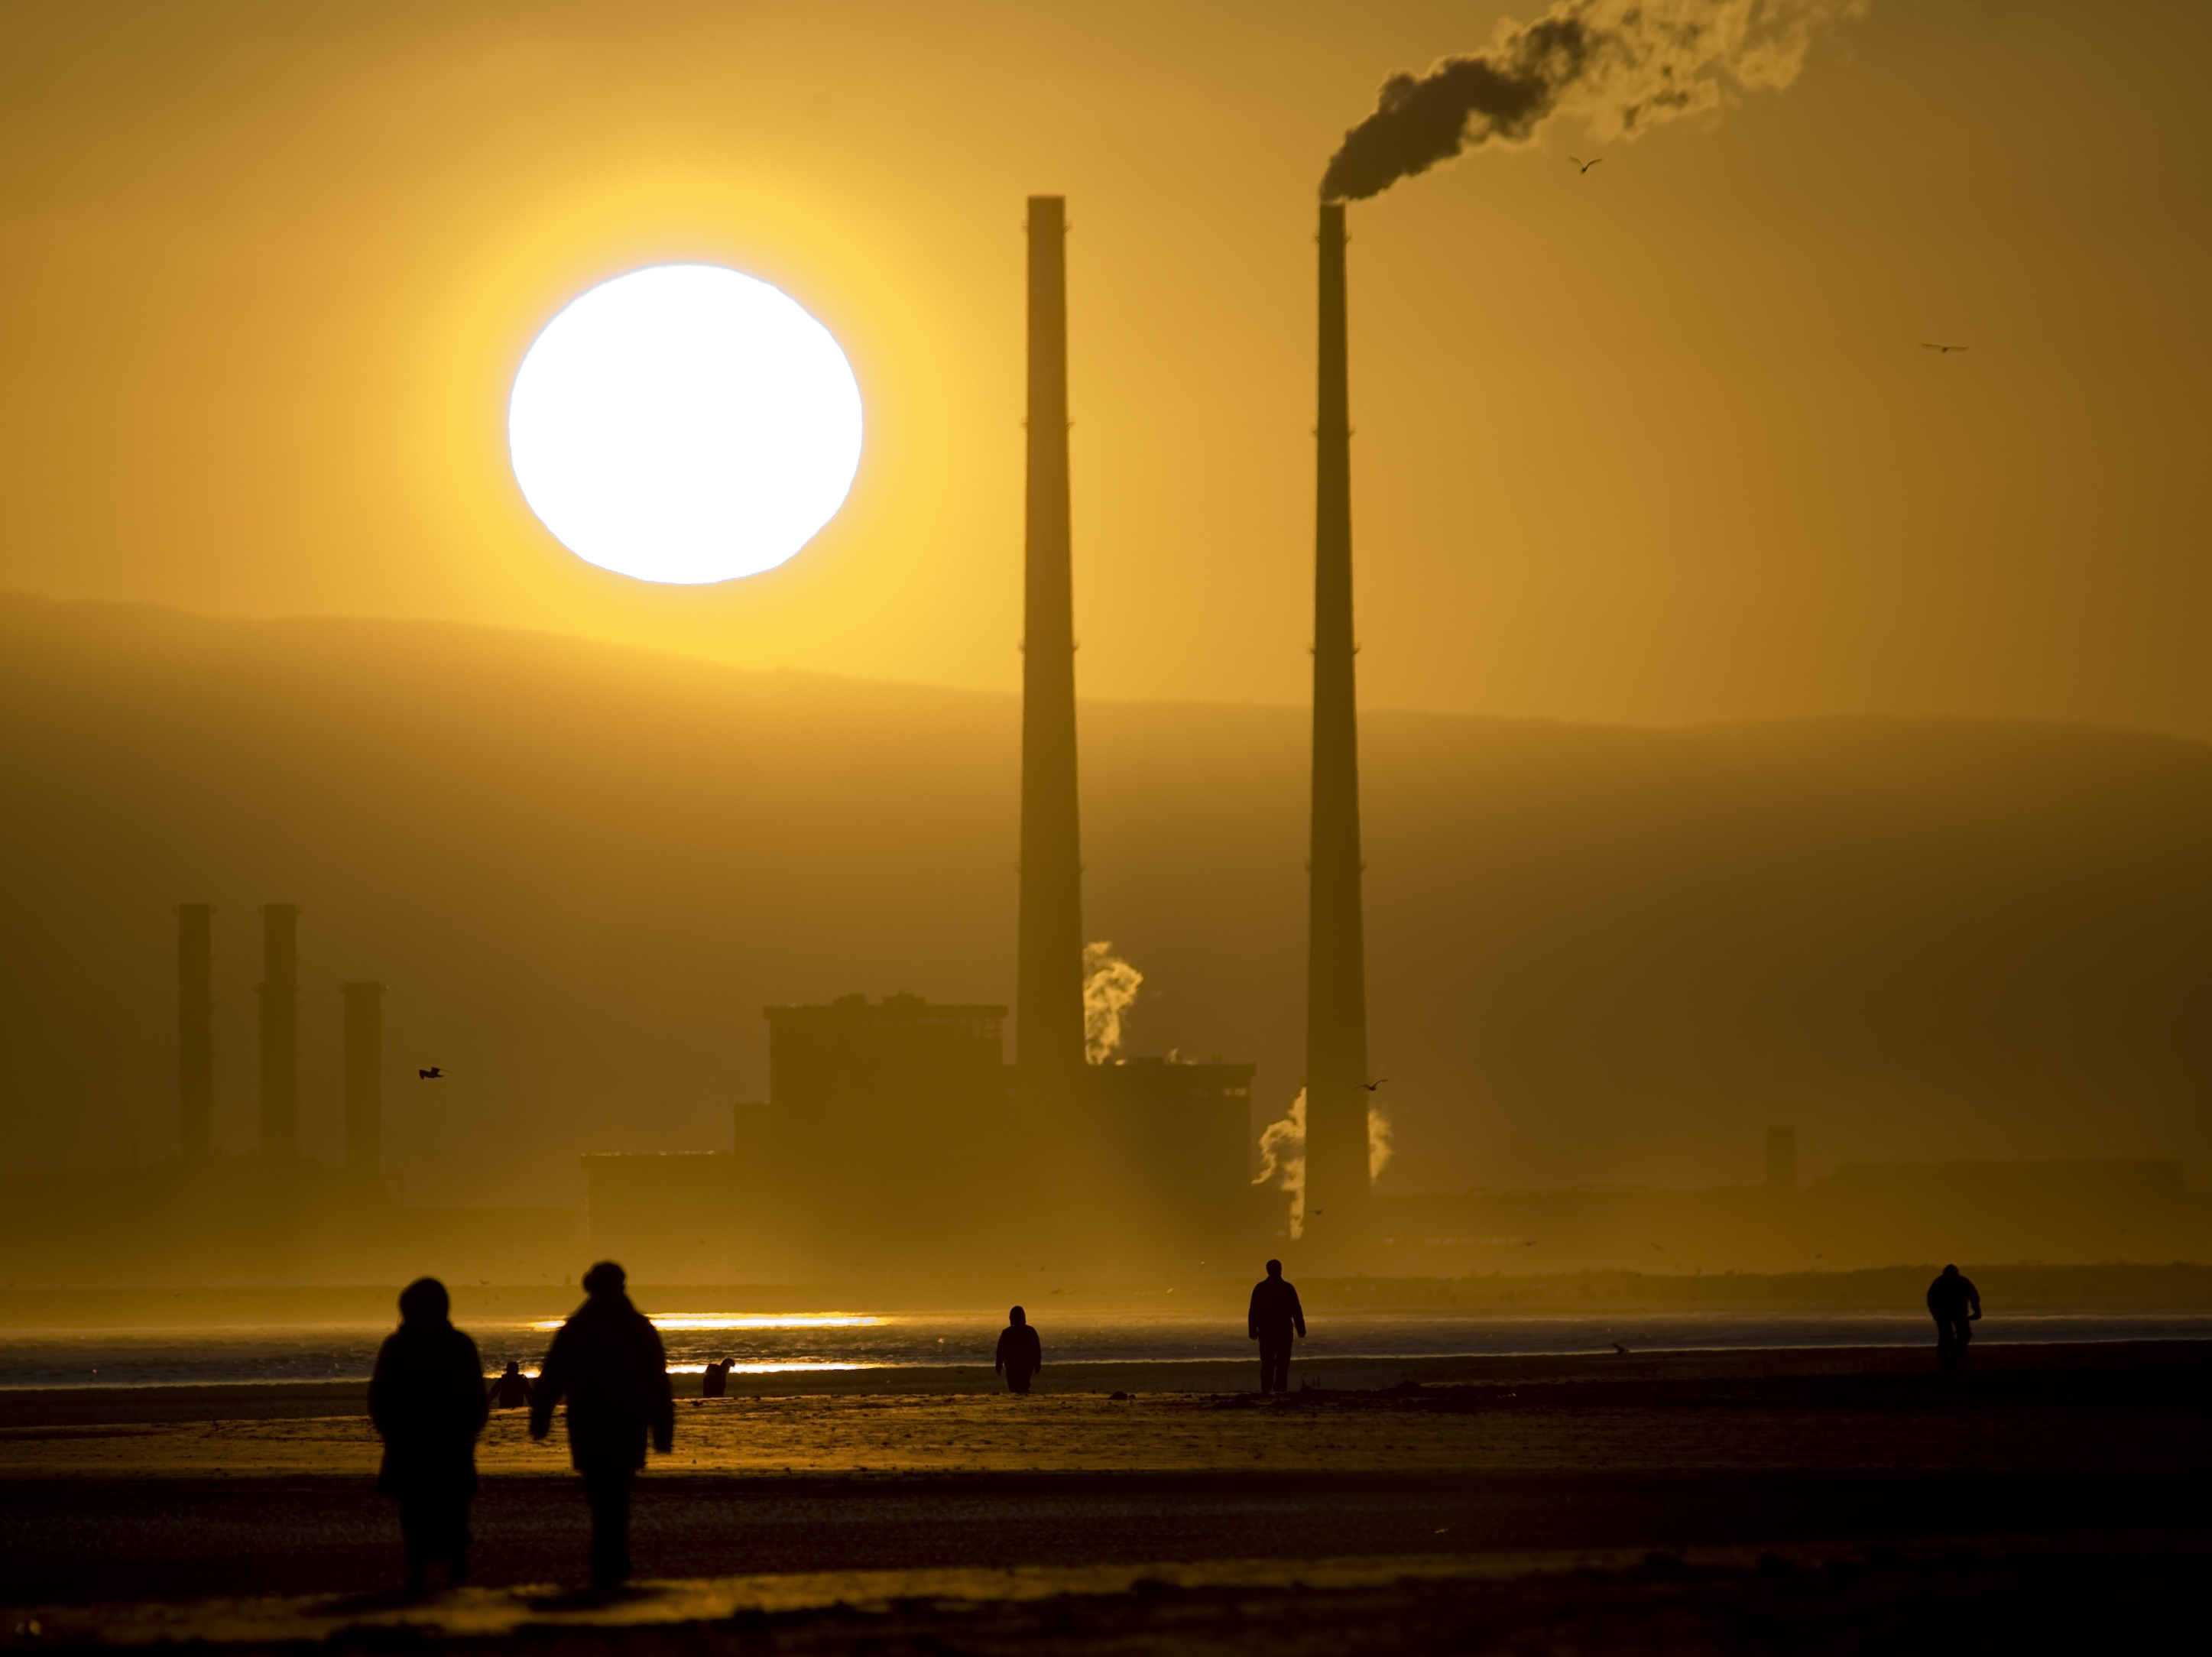 Ireland will be the first country to divest from fossil fuels